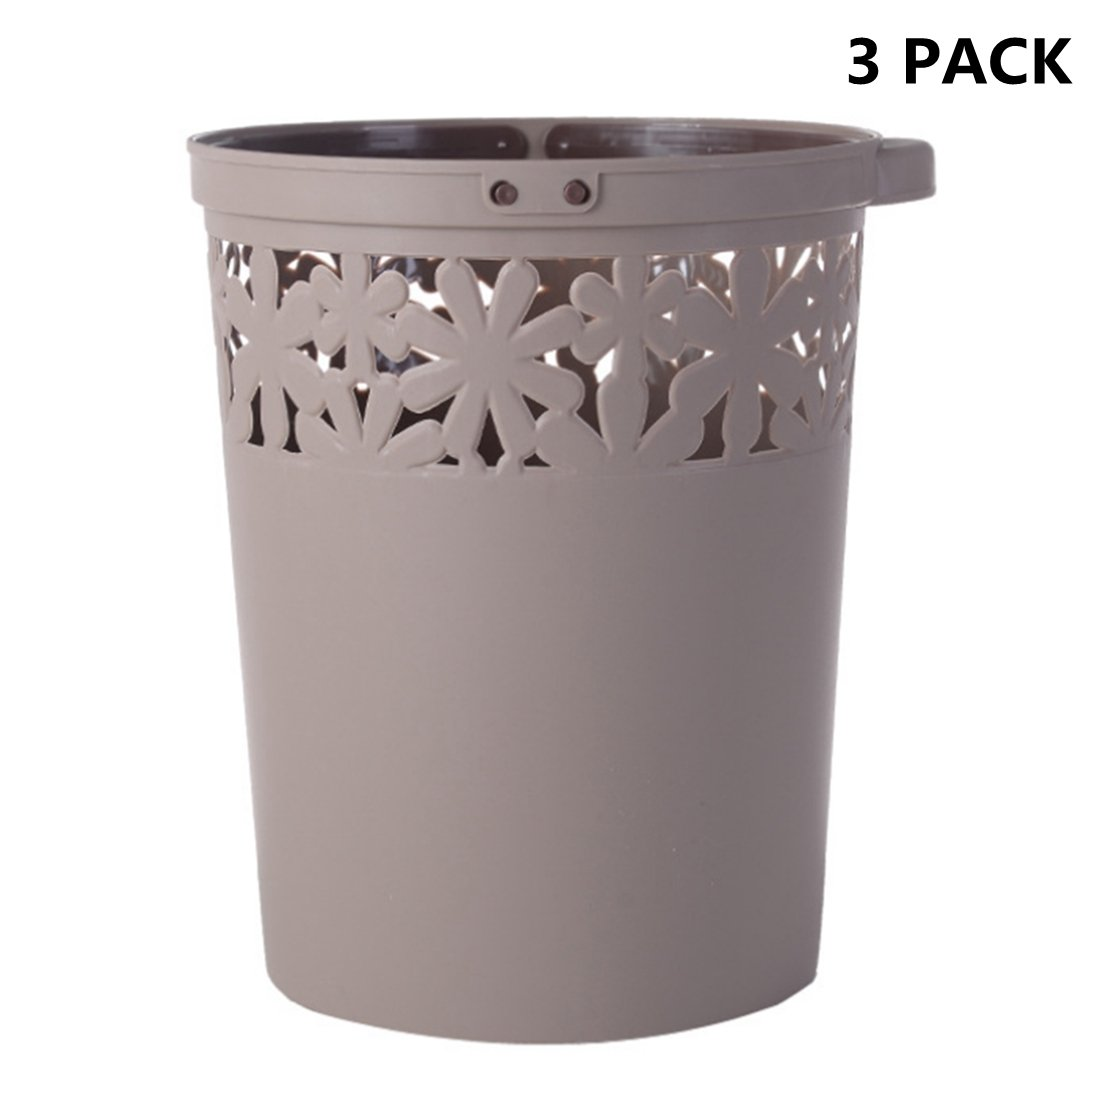 3 Pack Waste Bins, XSHION Waste Paper Baskets with Handle Kitchen Trash Can Office Garbage Bins SMALL (3 Pack Coffee)